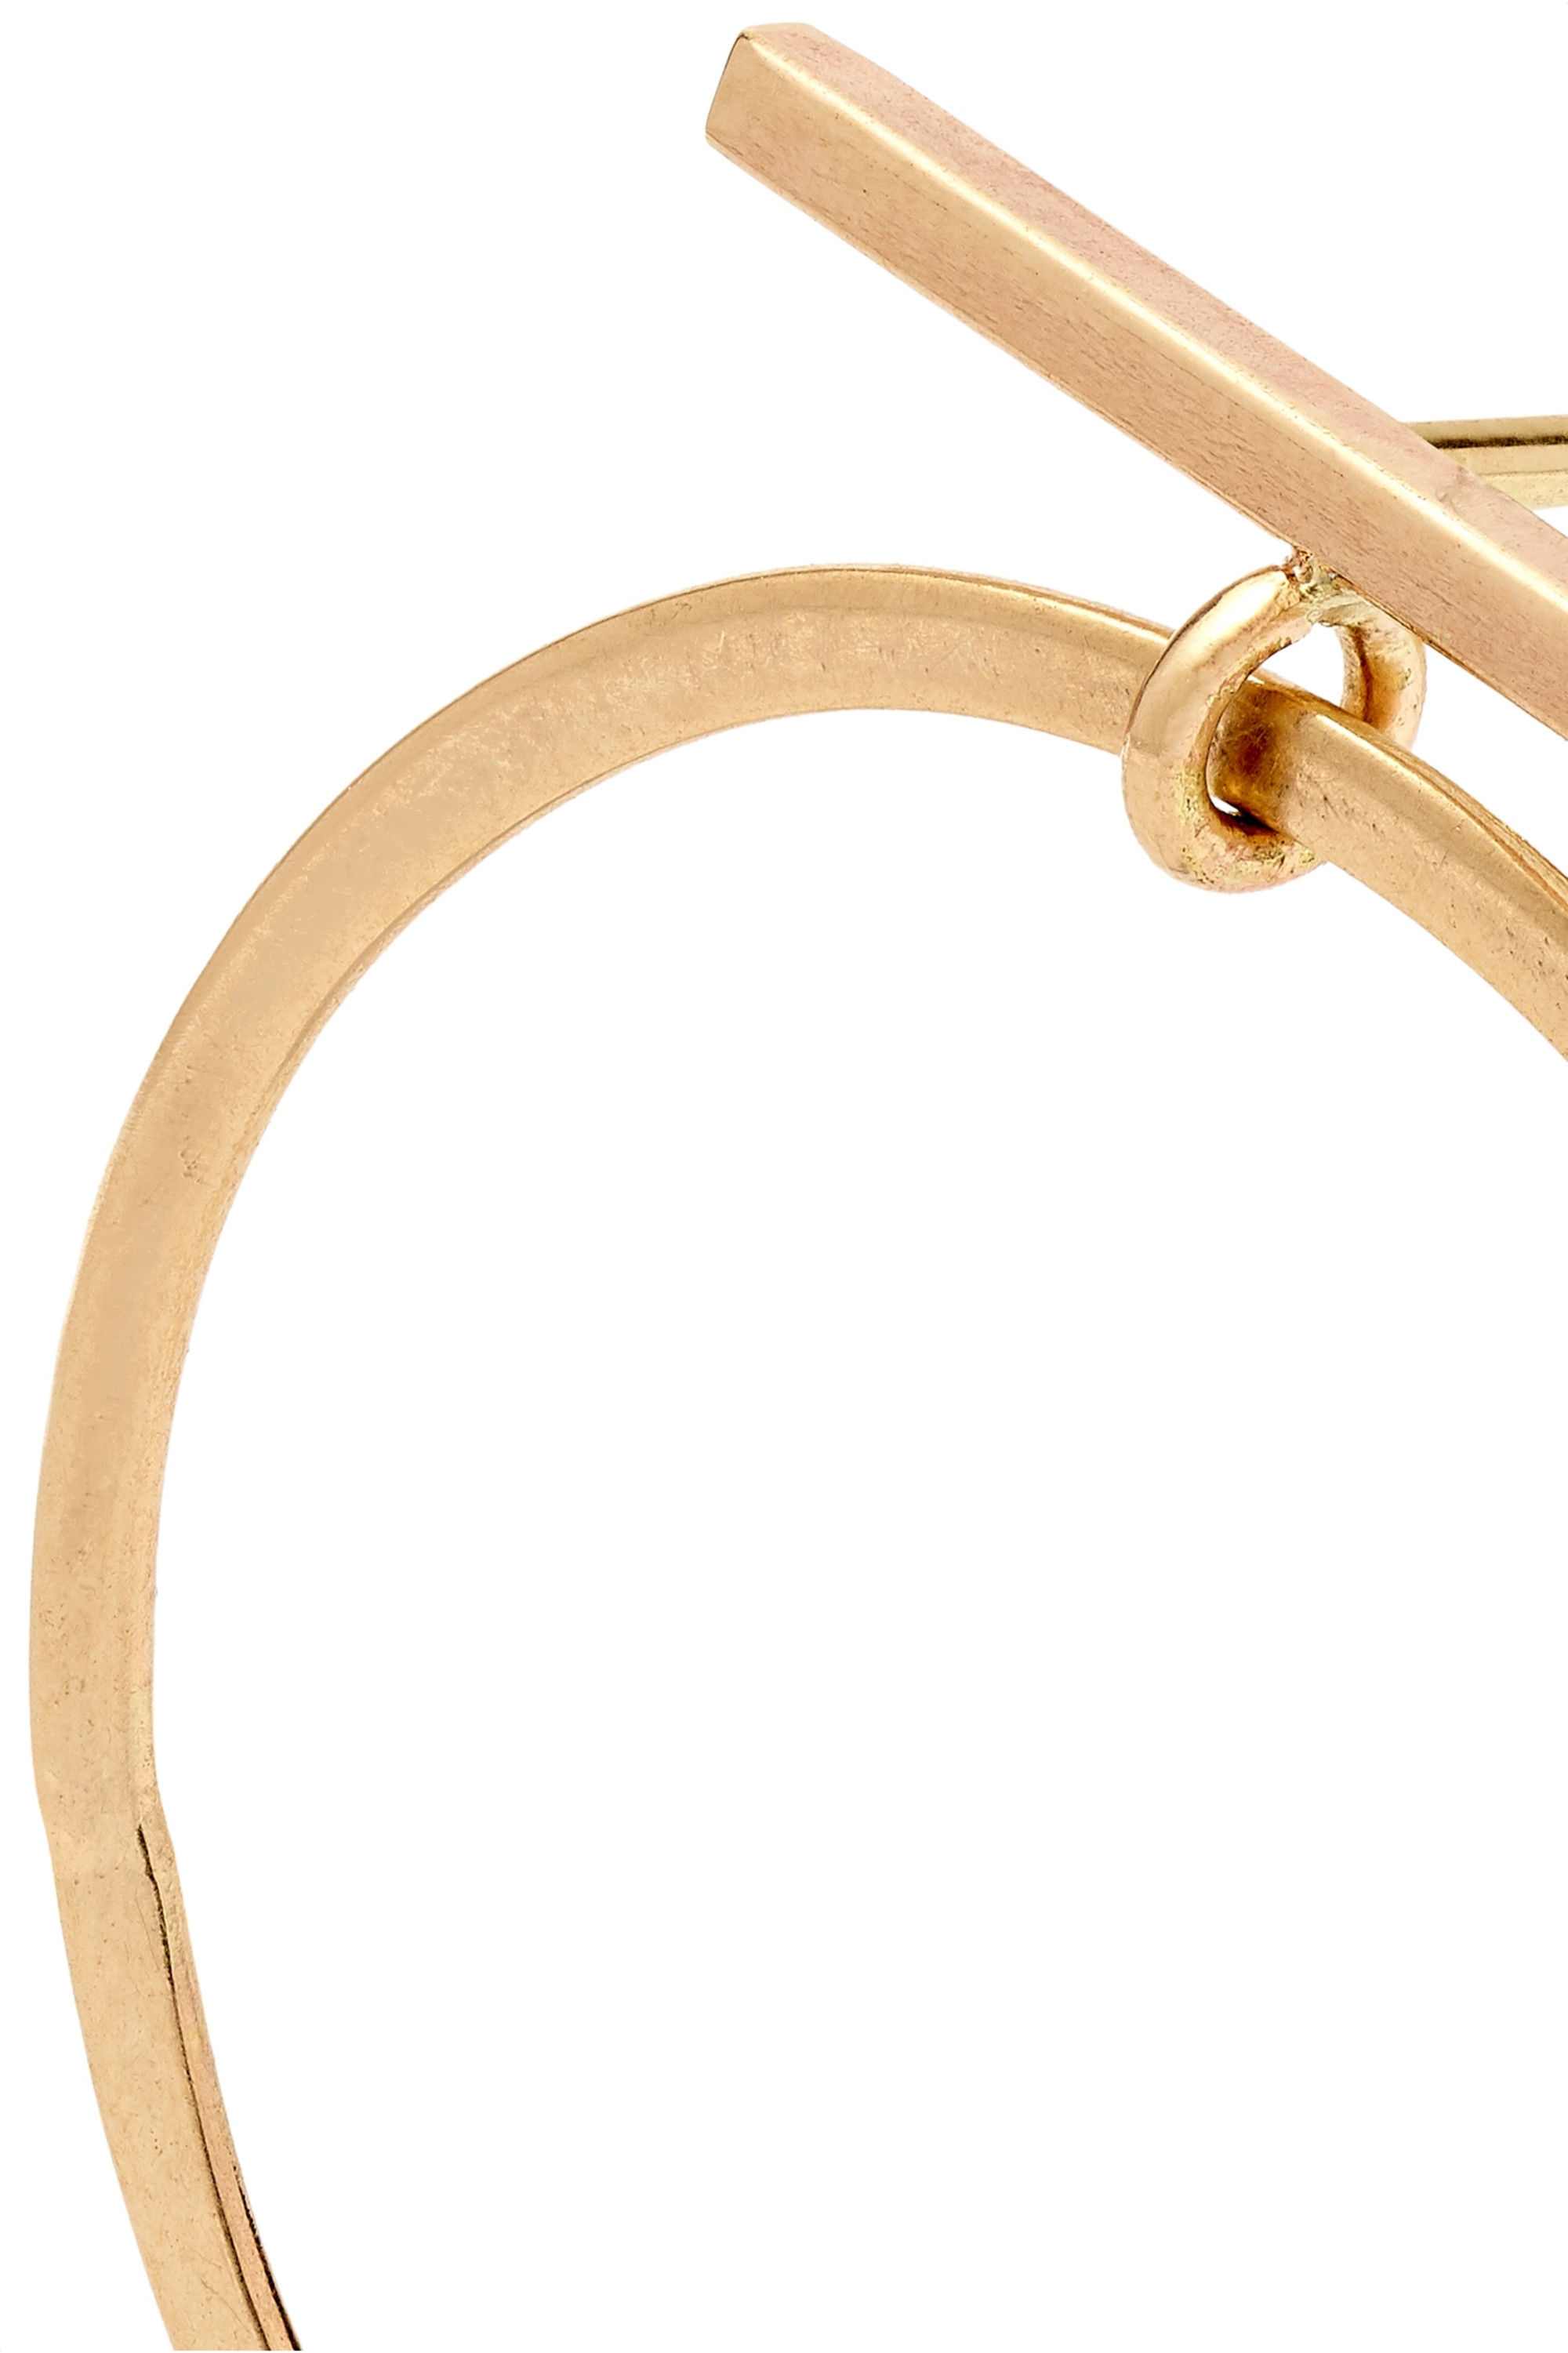 MELISSA JOY MANNING + NET SUSTAIN 14-karat gold hoop earrings